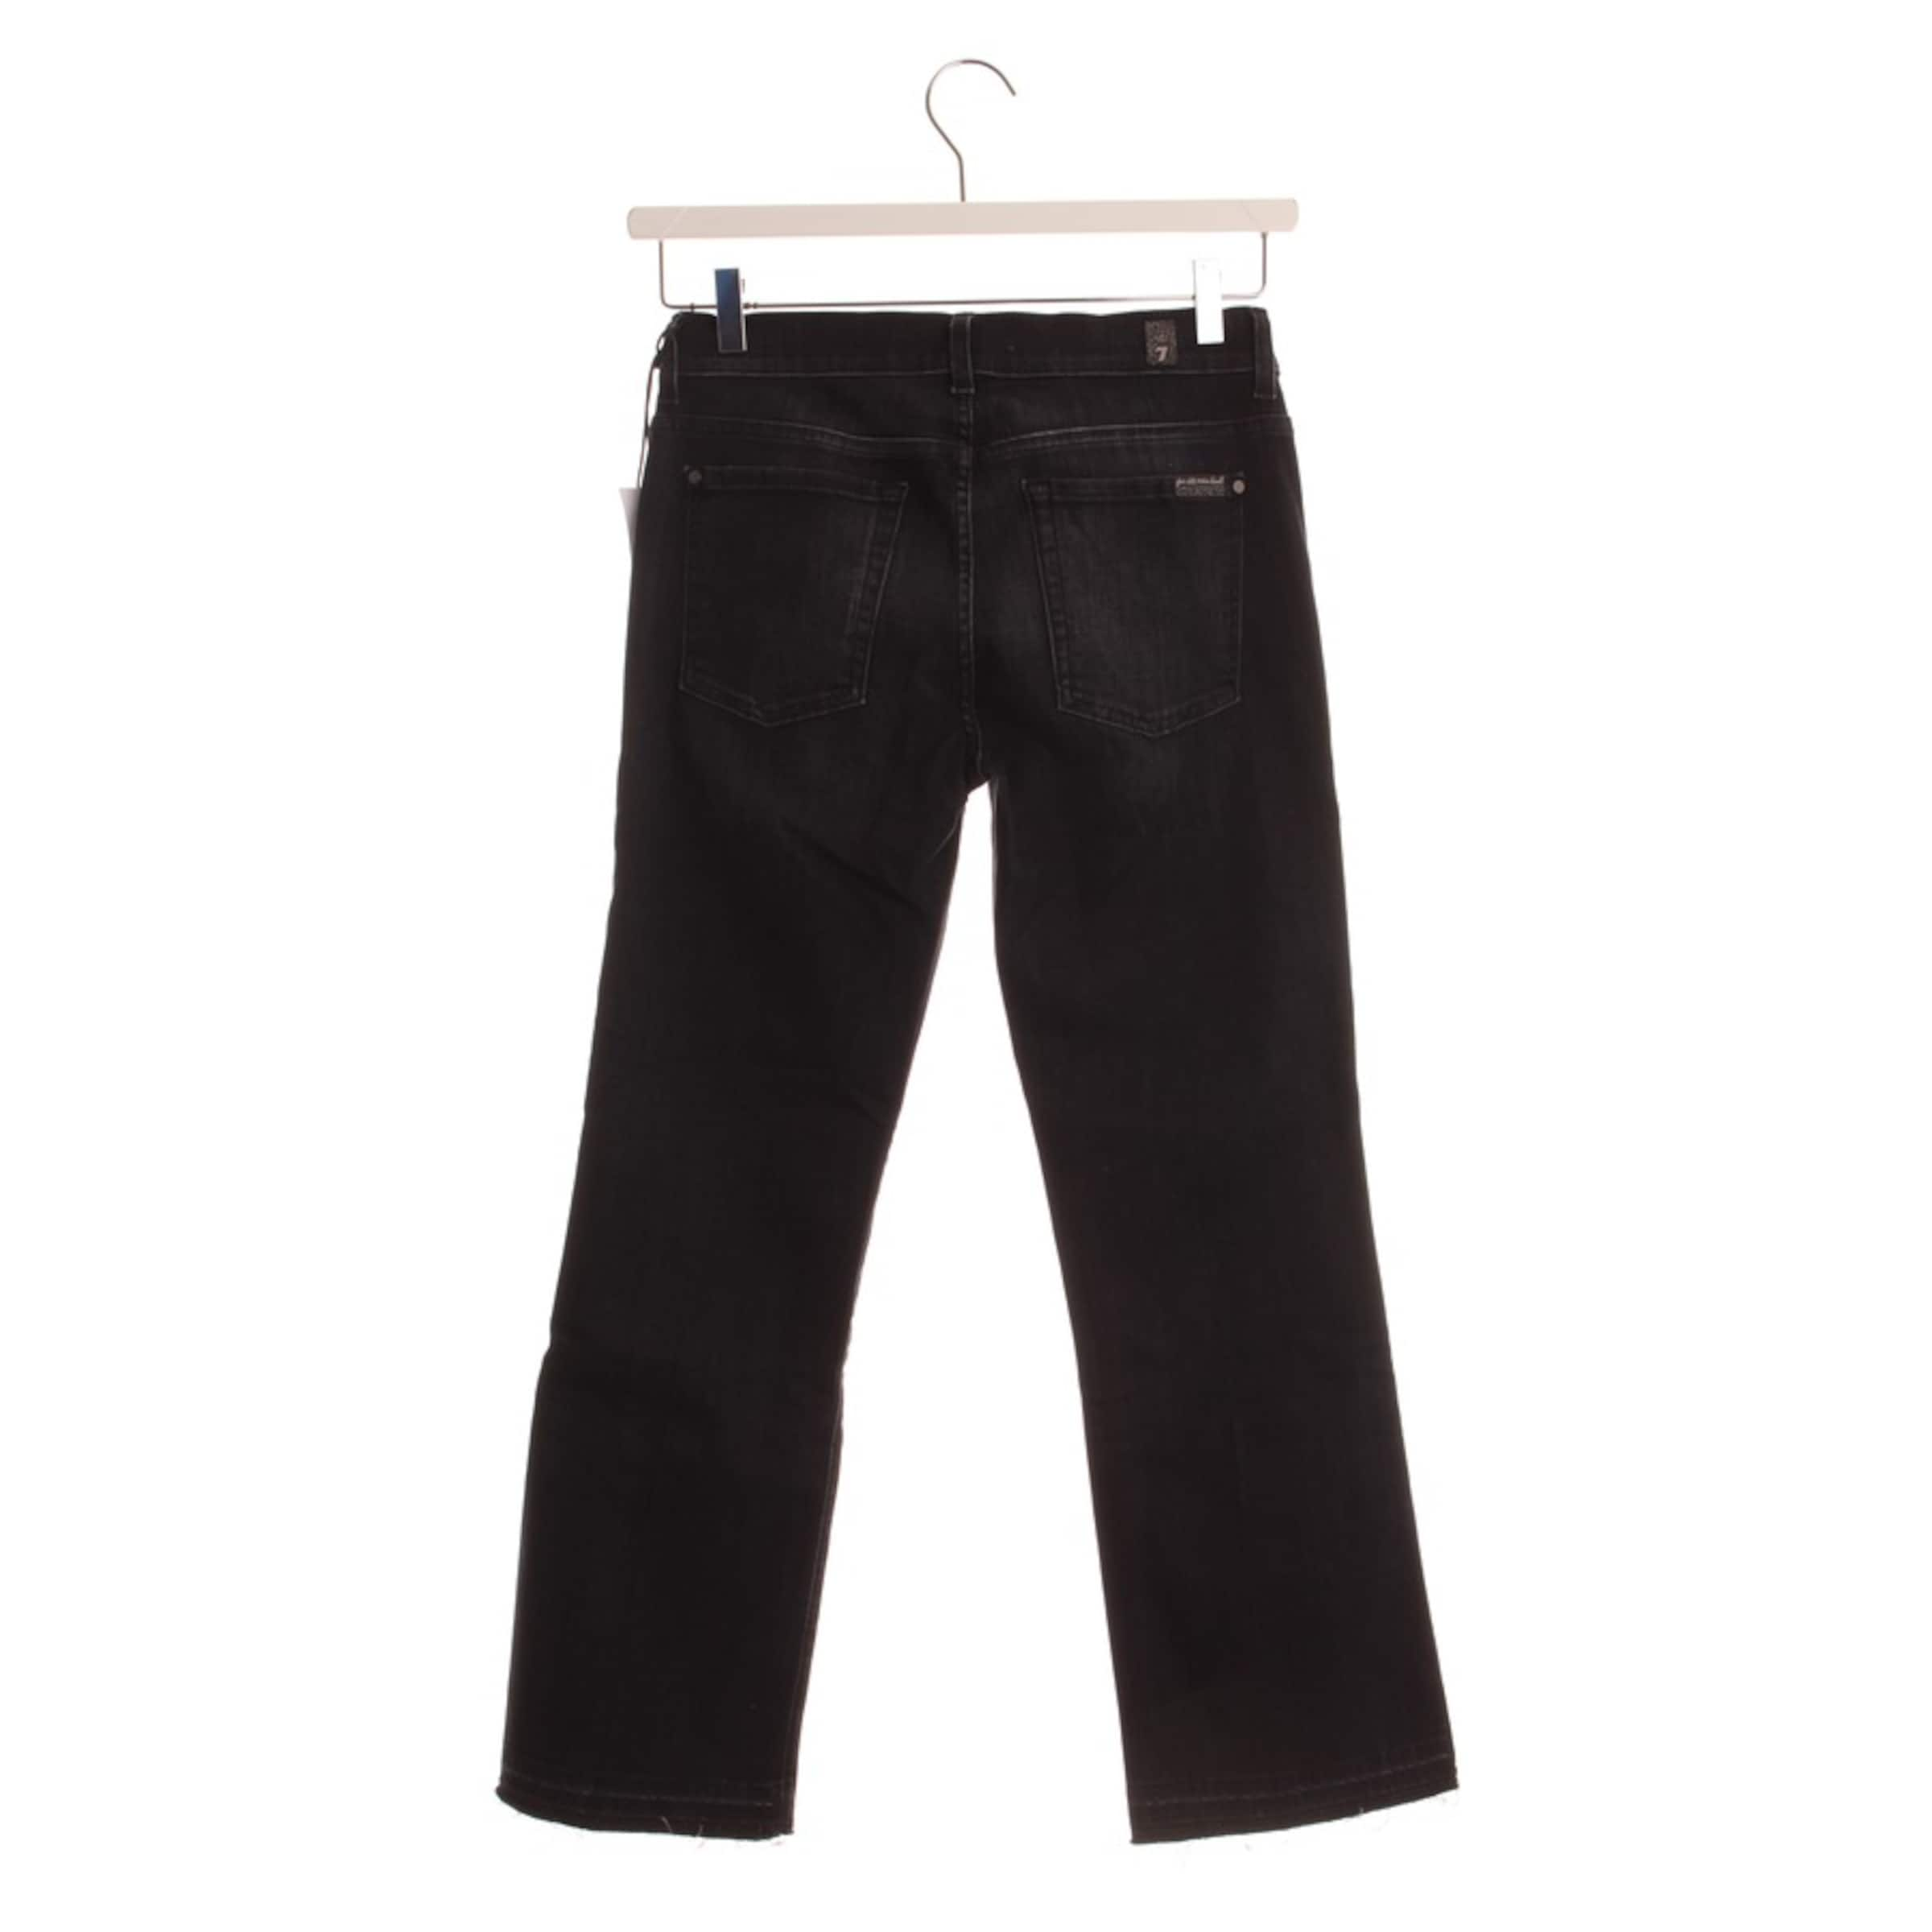 7 for all mankind Jeans in w28 in grau